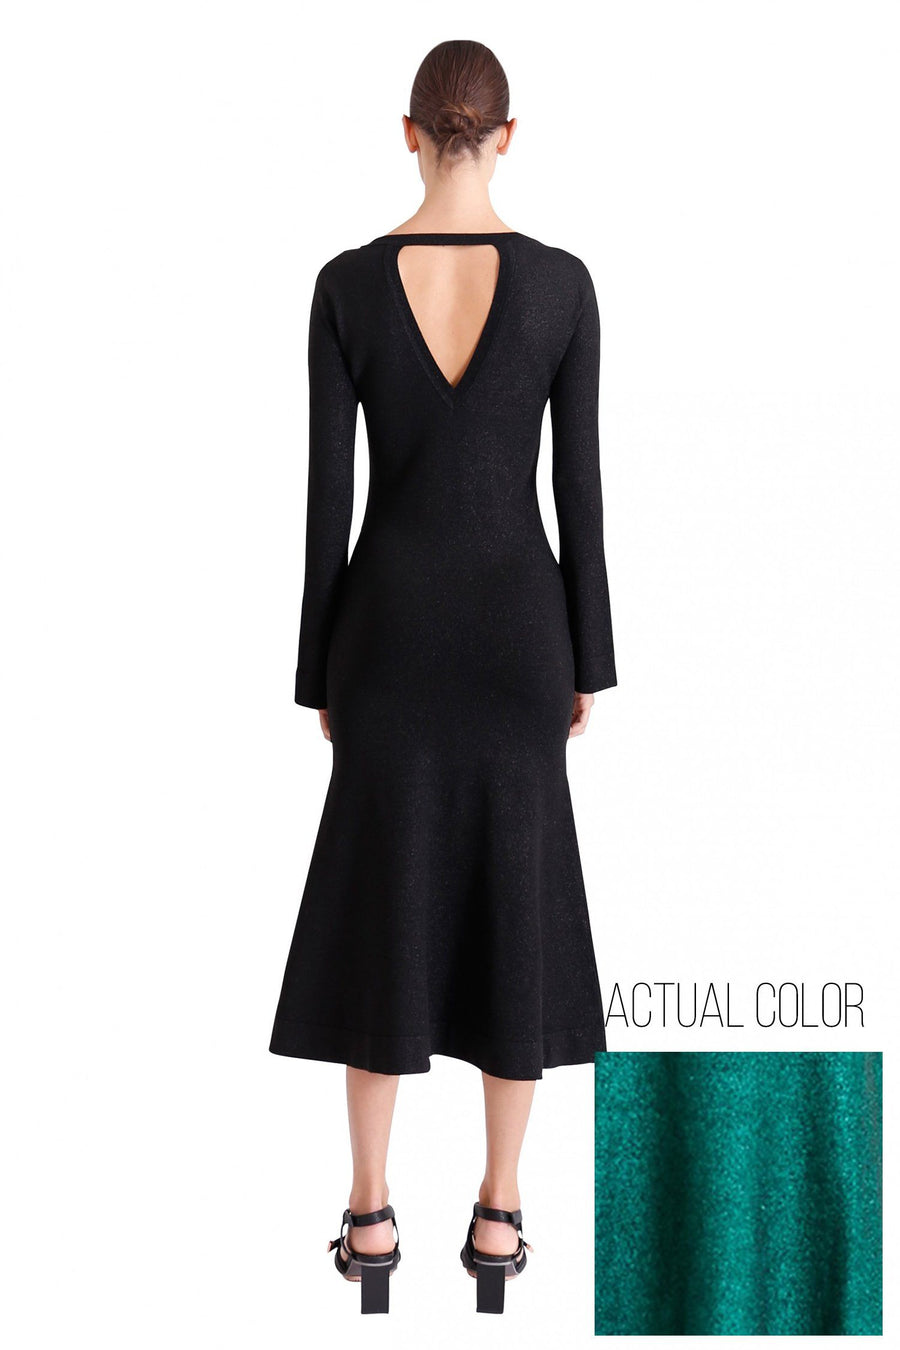 Allude Metallic Knit Dress in Emerald | FINAL SALE